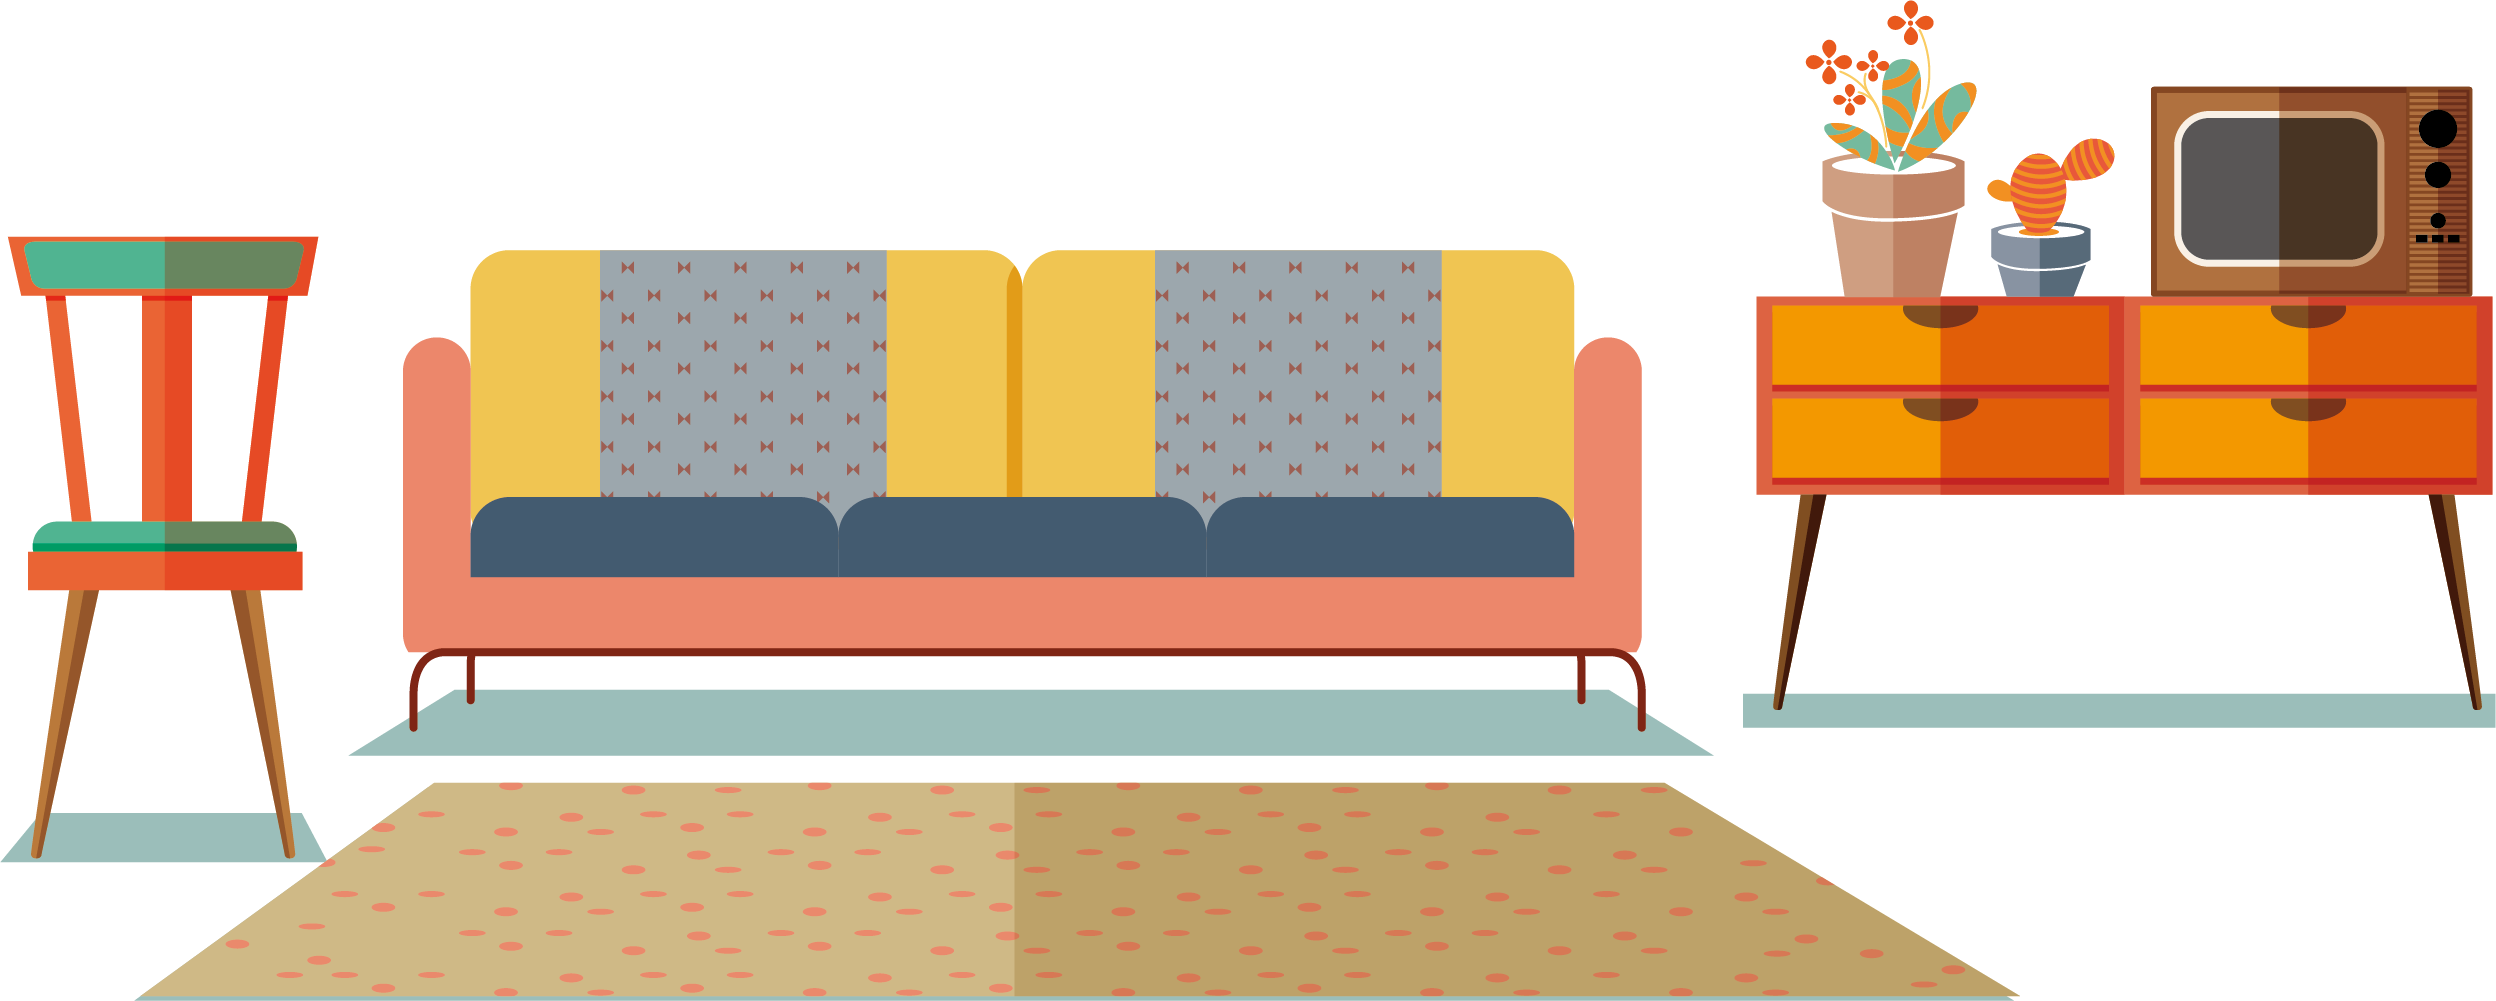 Furniture clipart home furnishings. Table living room carpet